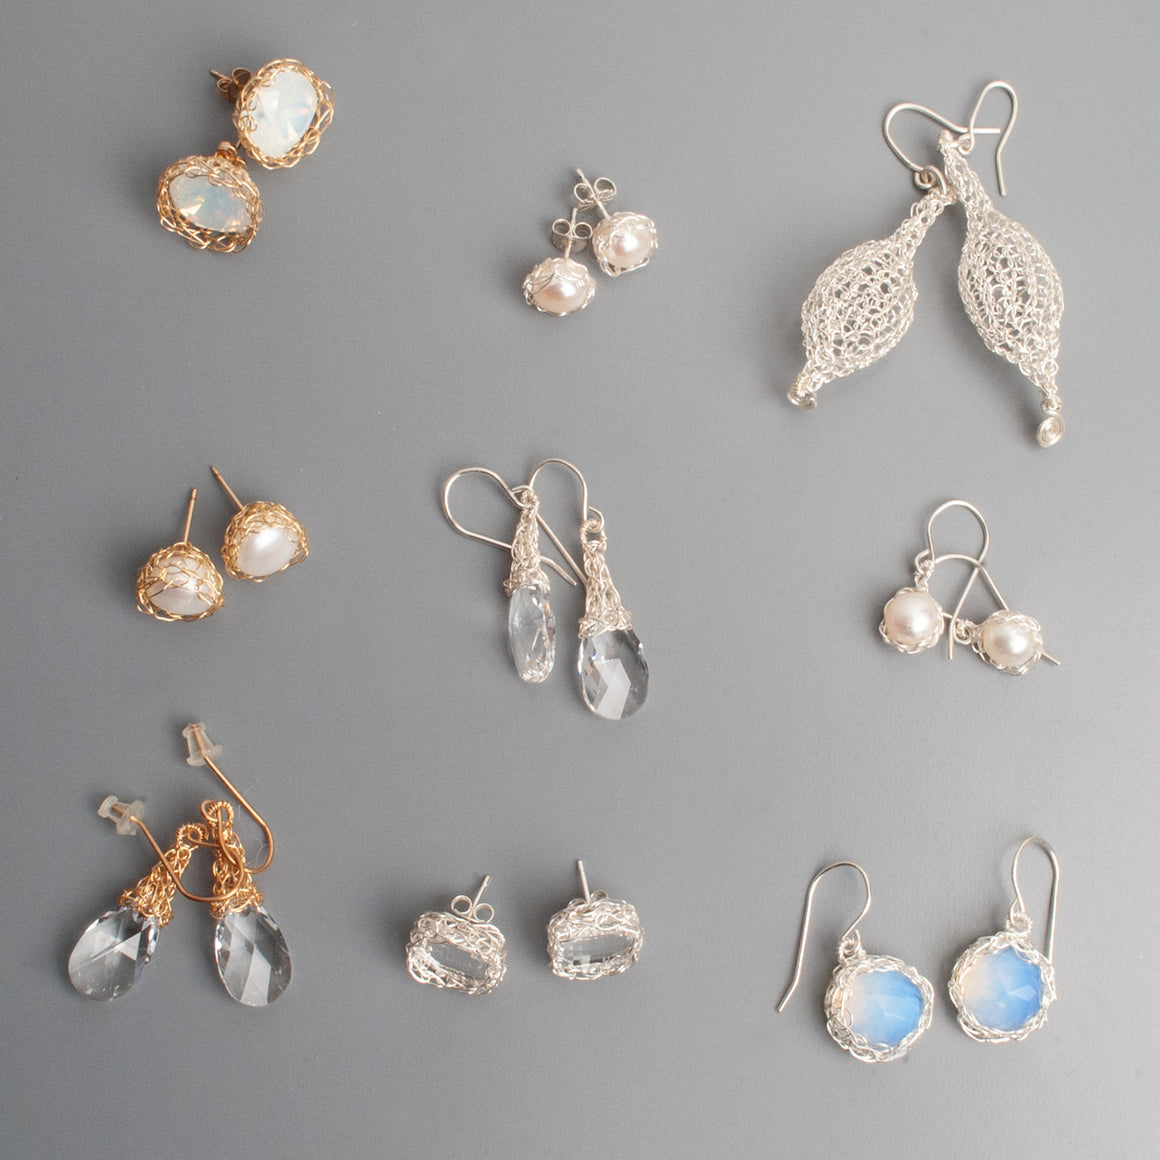 White Earrings - Sample sale - yooladesign